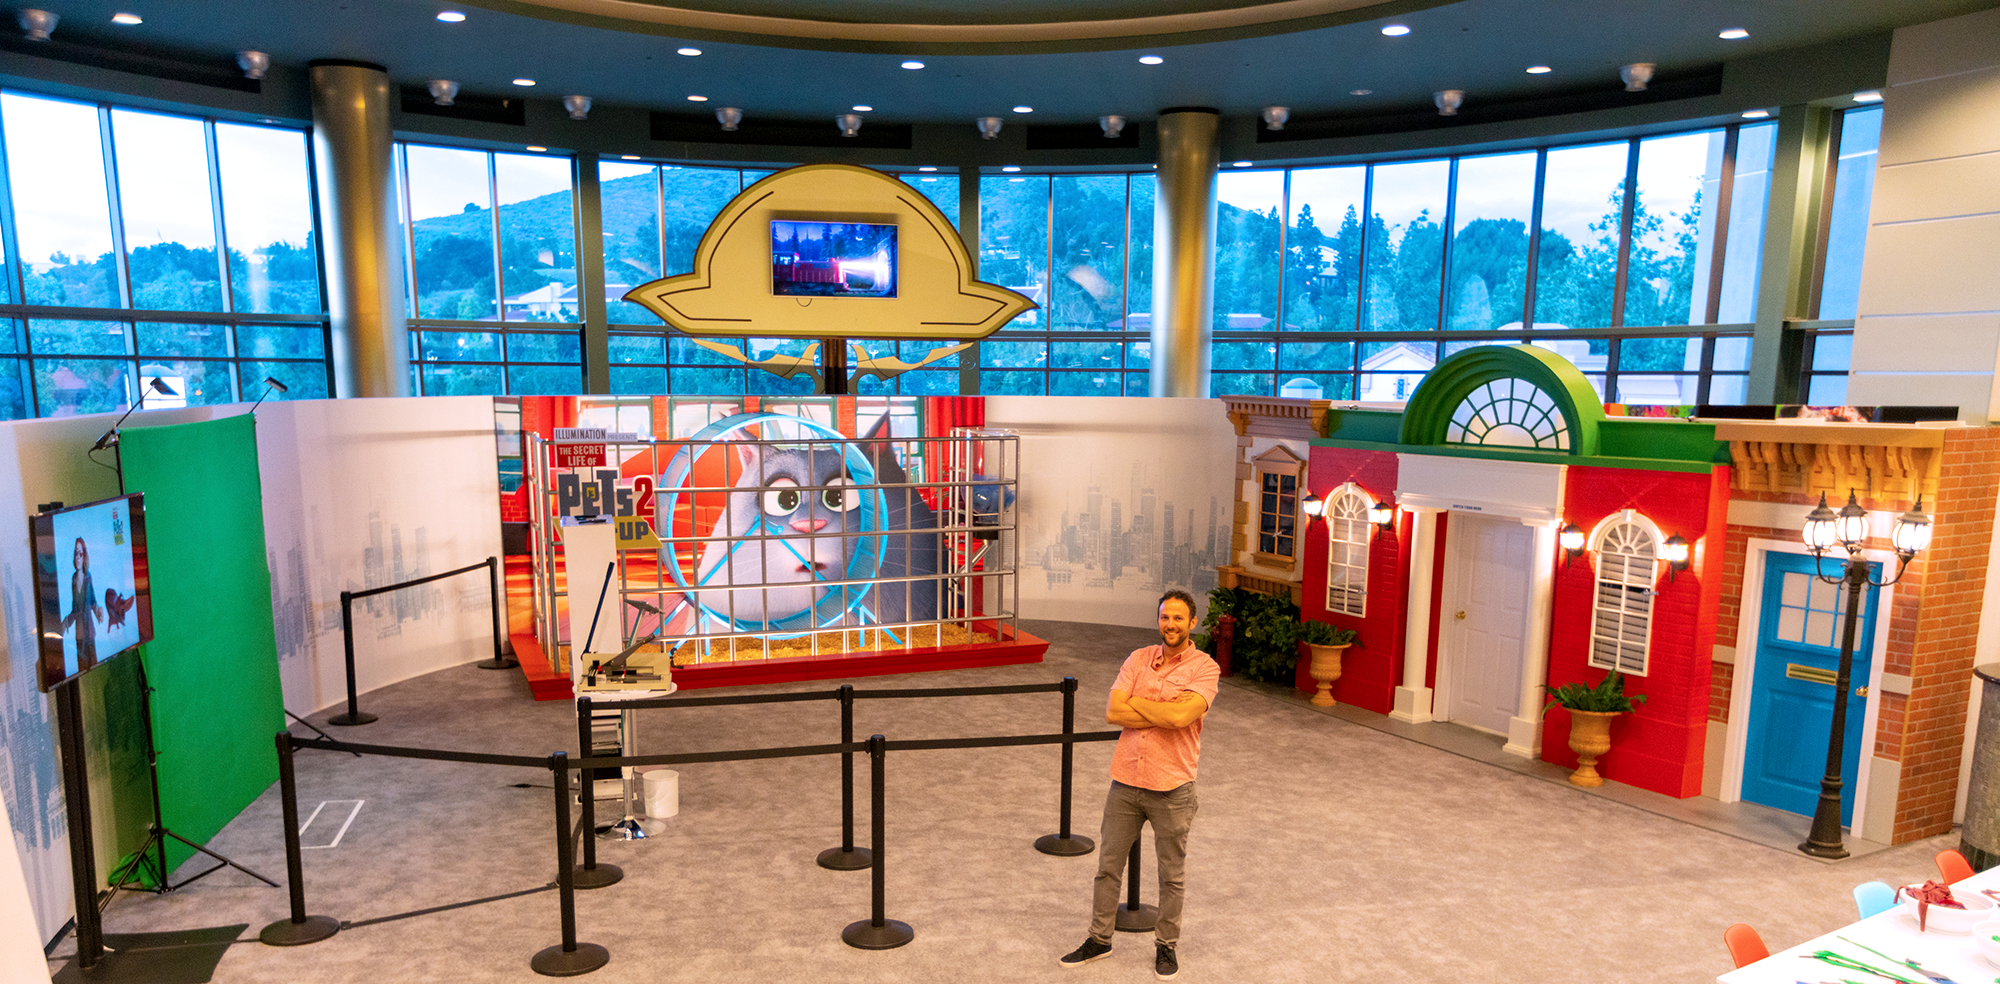 The secret life of pets pop up - AMC Theater Sean Pedeflous